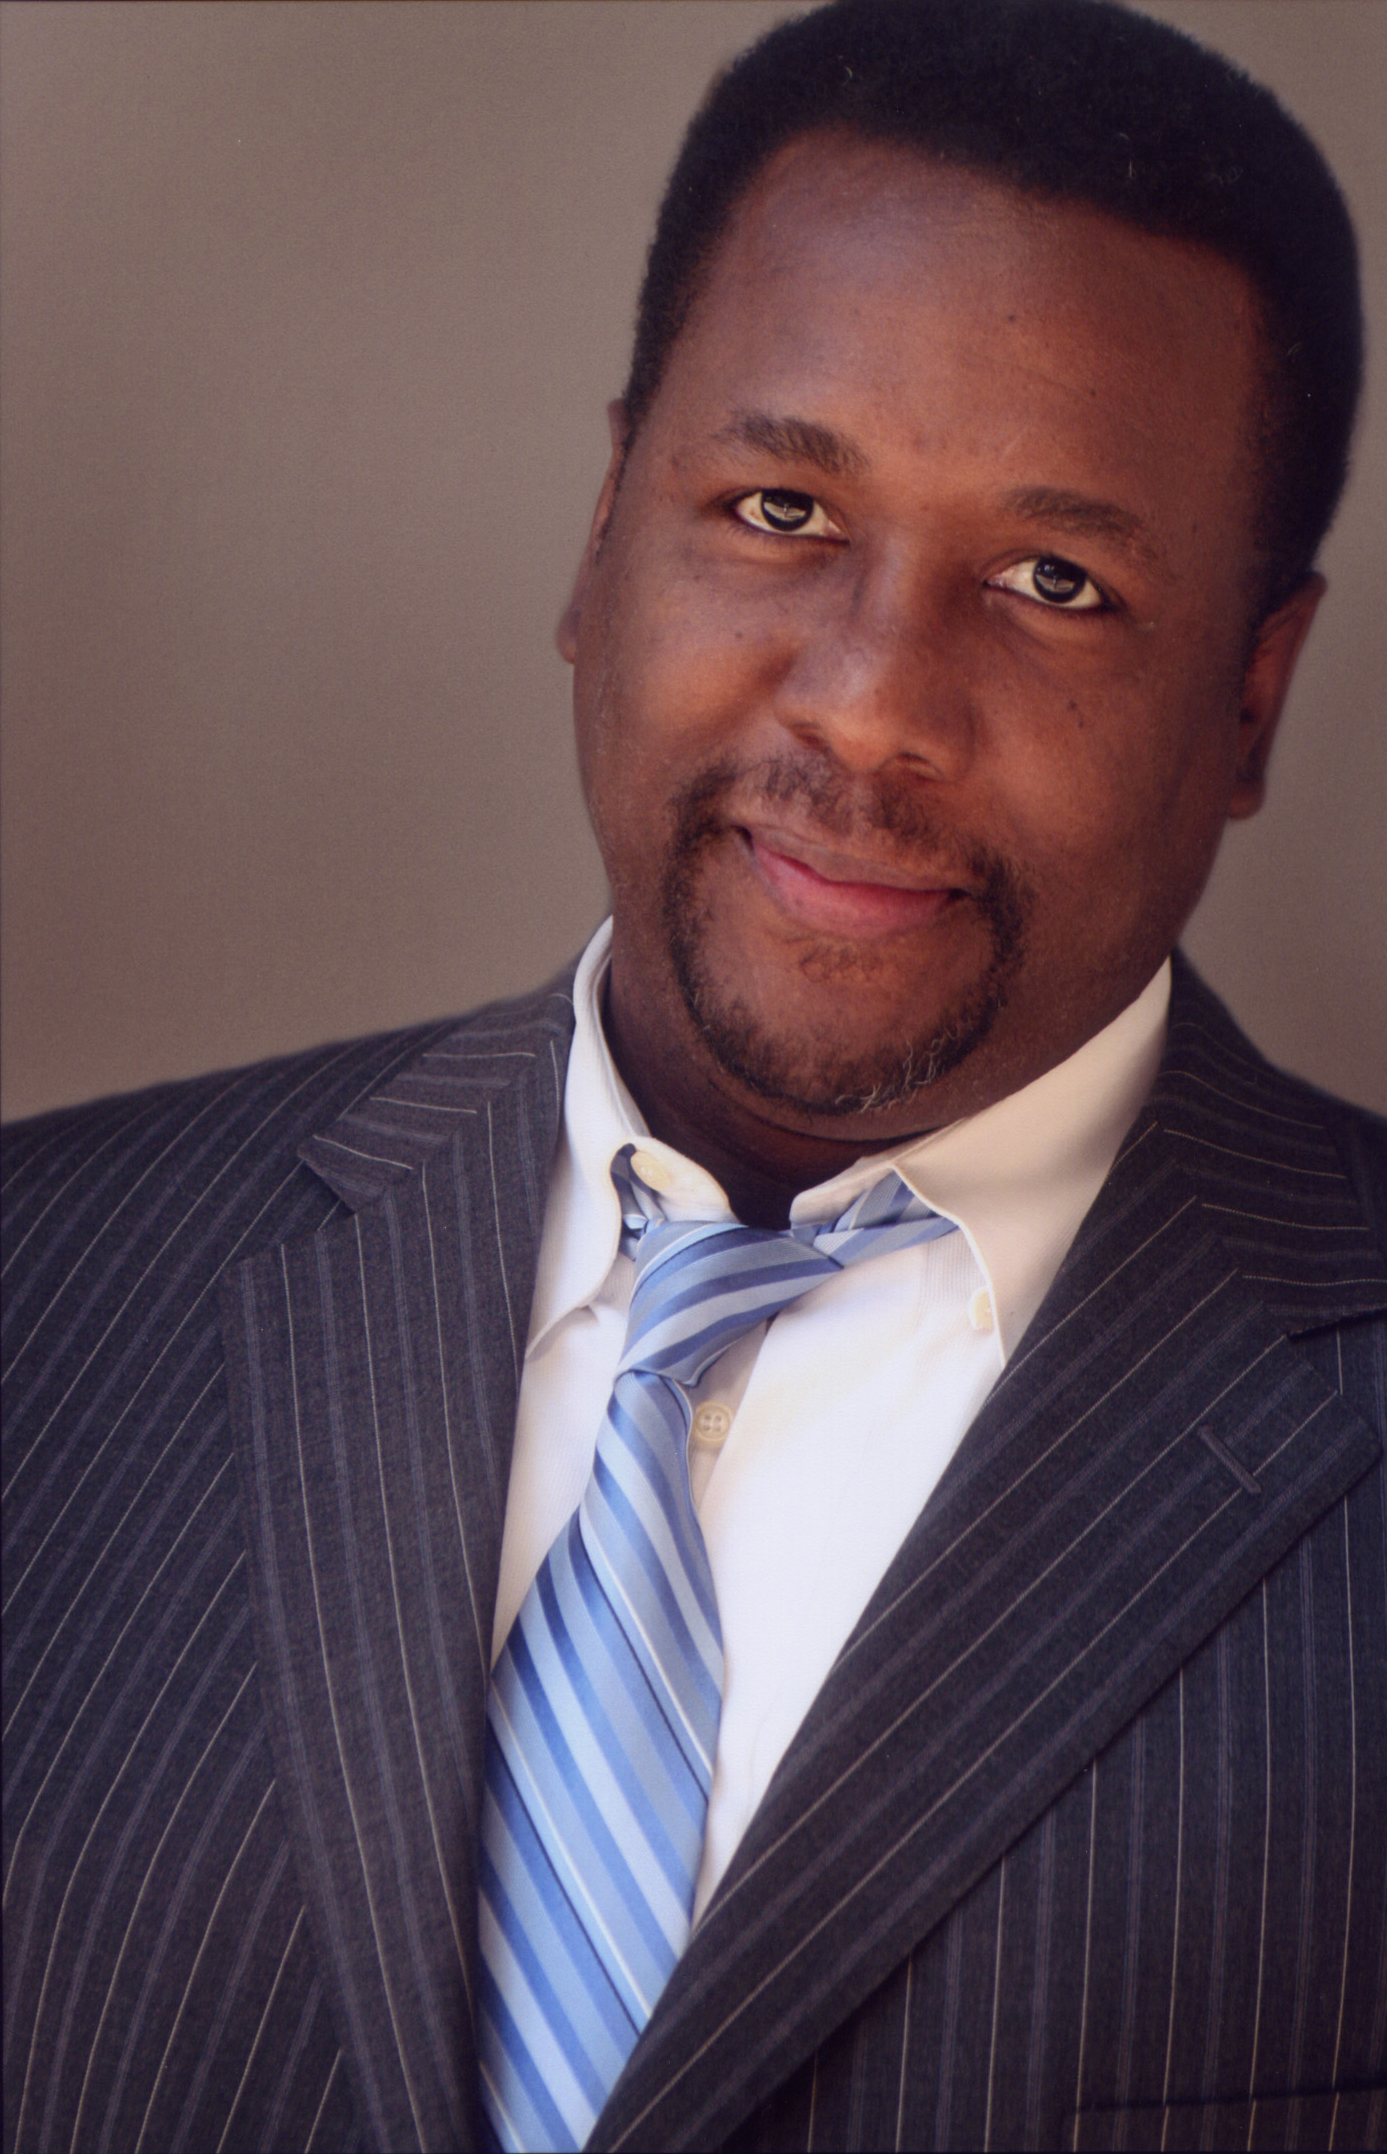 The 57-year old son of father (?) and mother(?) Wendell Pierce in 2021 photo. Wendell Pierce earned a  million dollar salary - leaving the net worth at  million in 2021